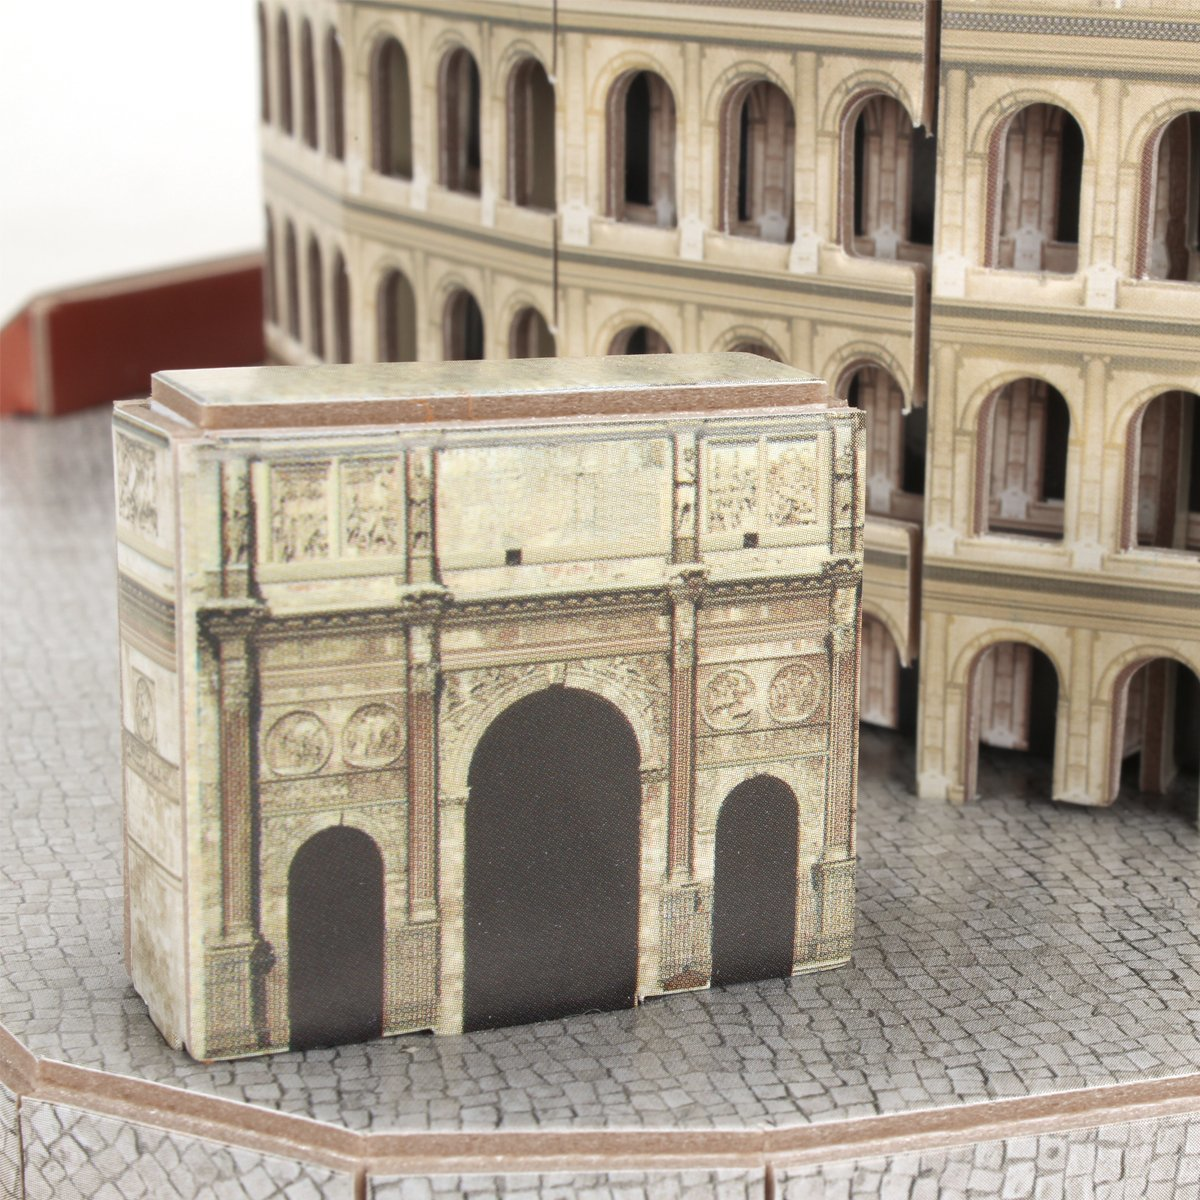 Cubic Fun: National Geographic 3D Model Puzzle - The Colosseum (Rome) image